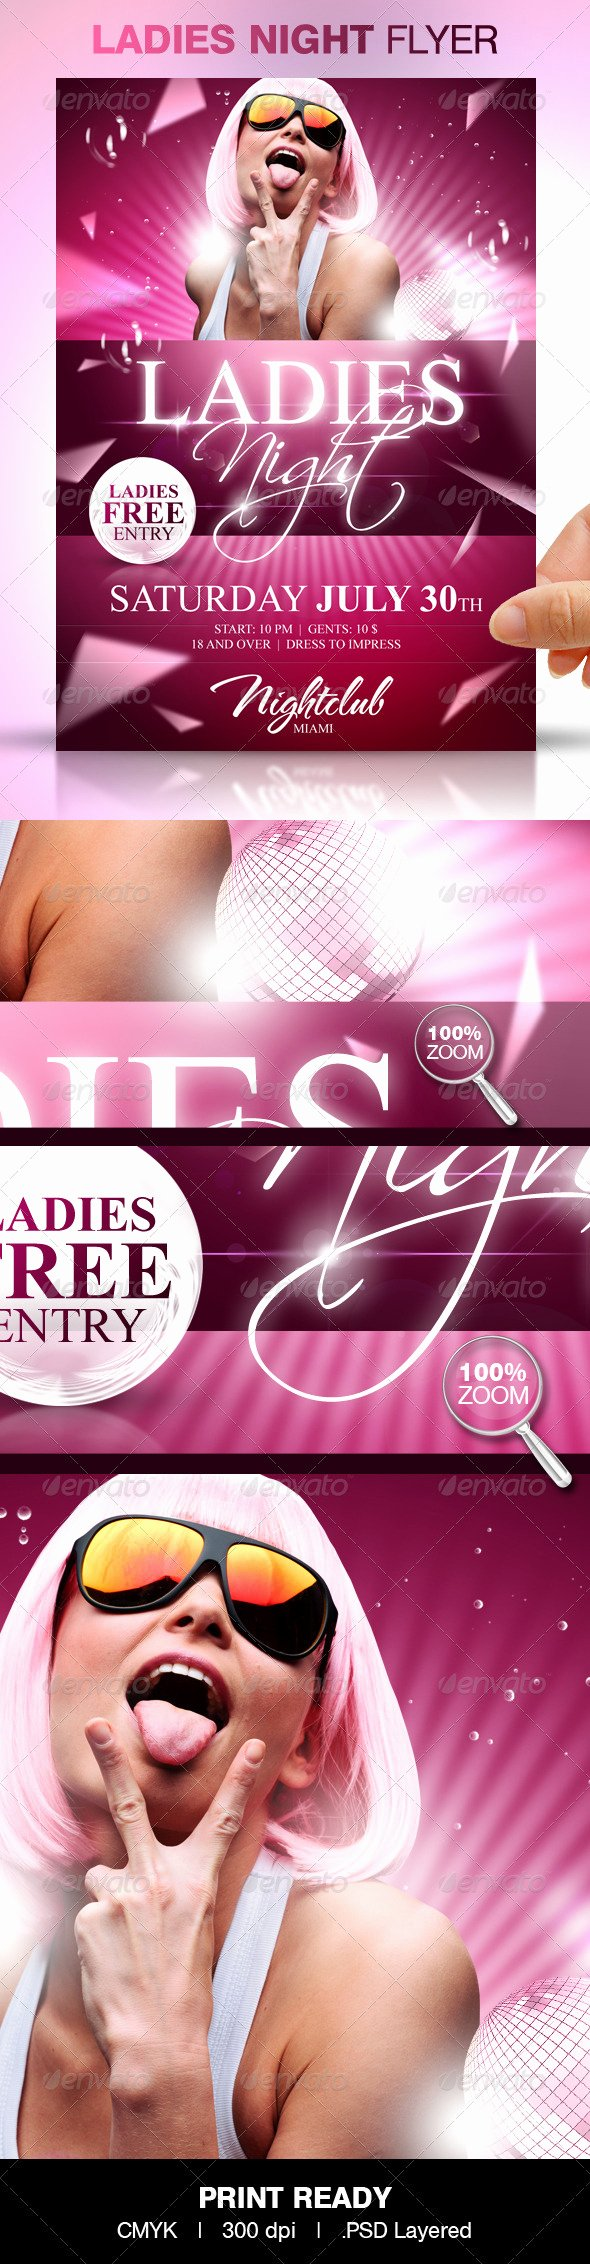 Ladies Night Flyer Template Luxury La S Night Party Flyer